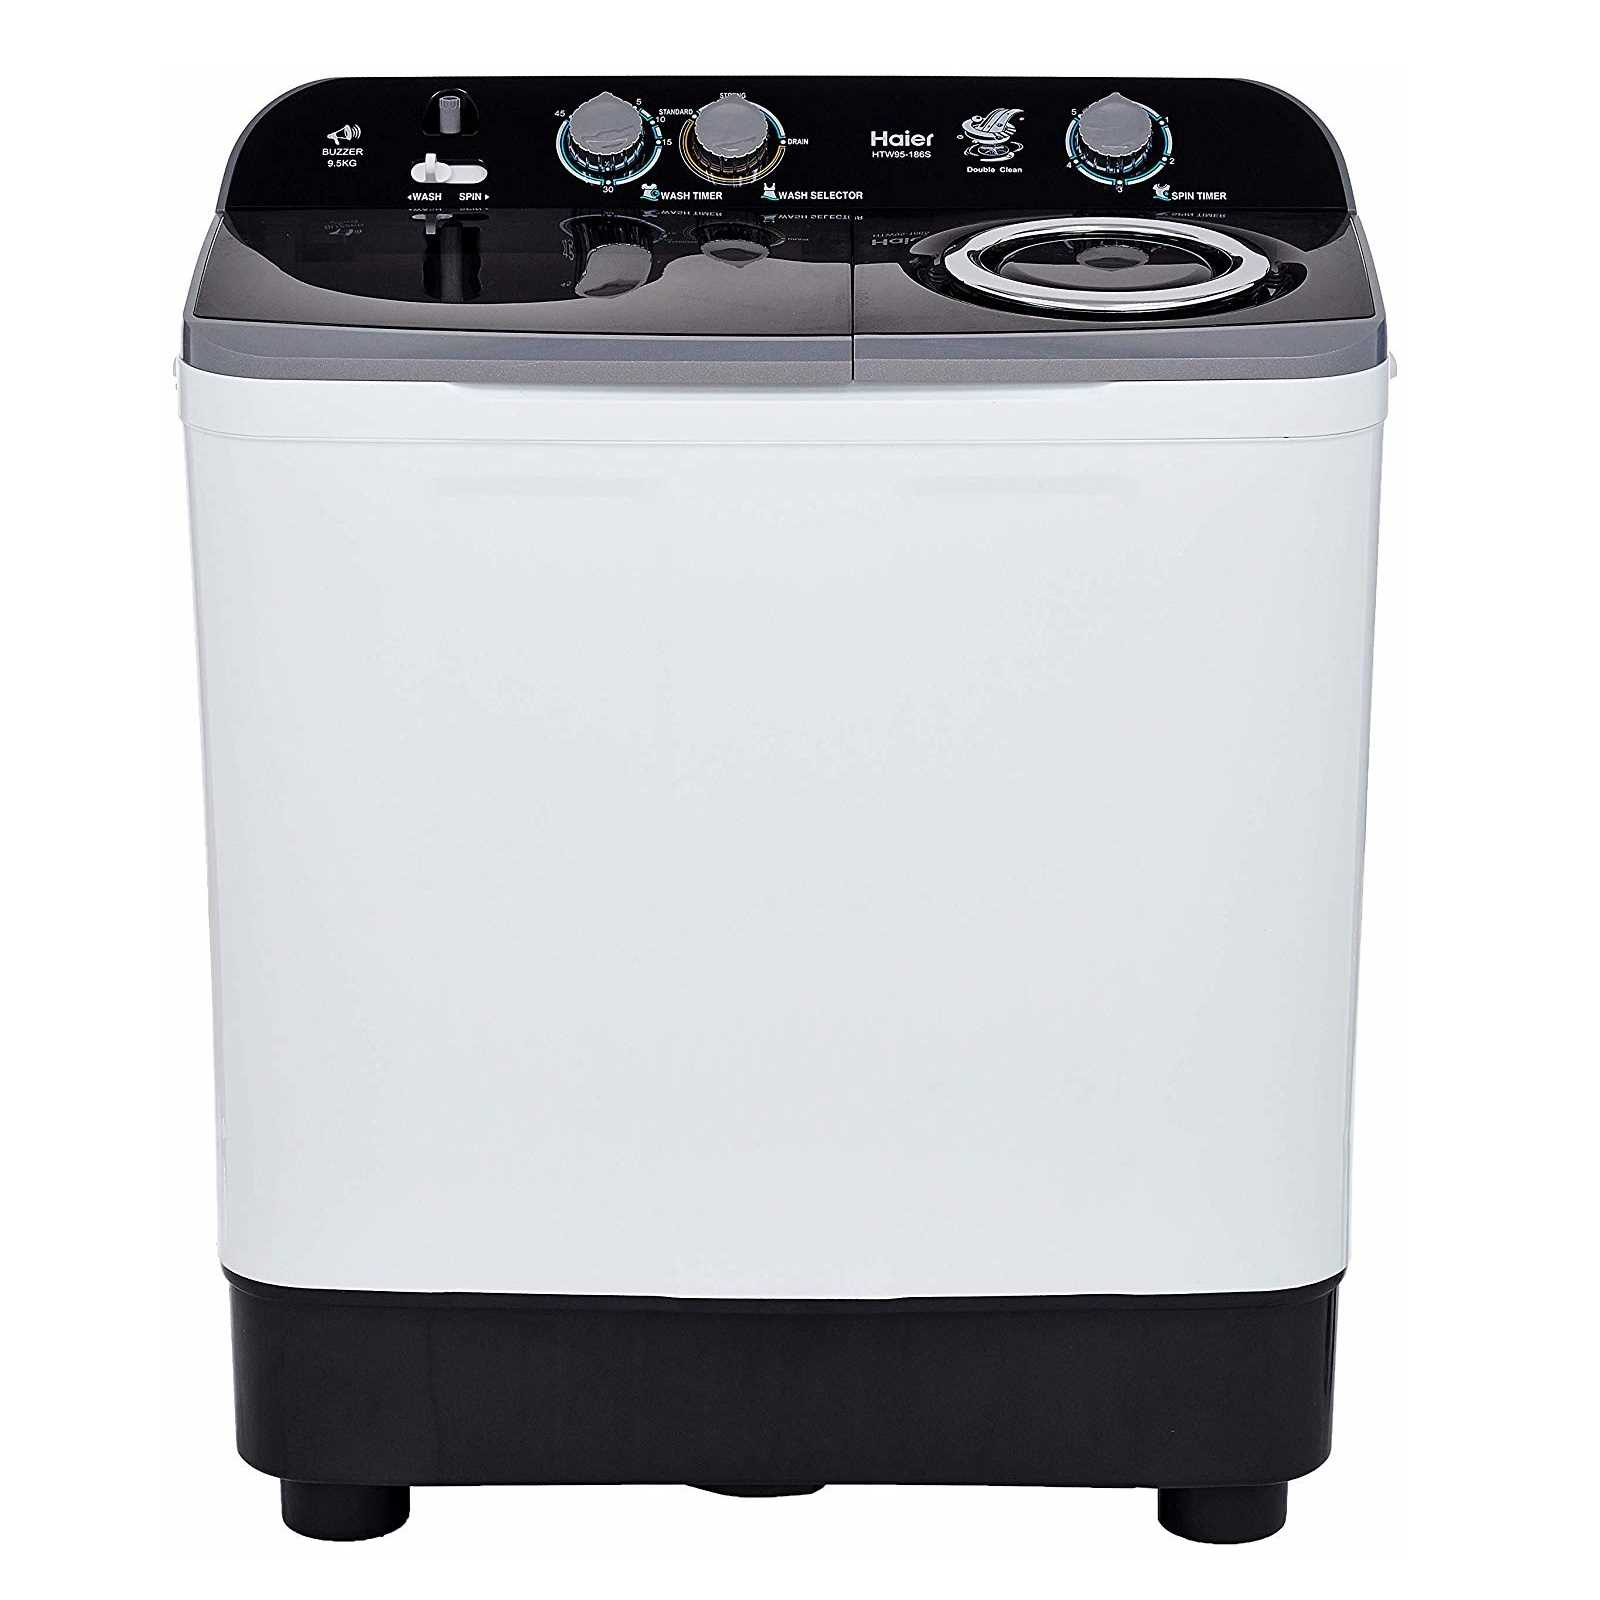 Haier HTW95-186S 9.5 Kg Semi Automatic Top Loading Washing Machine